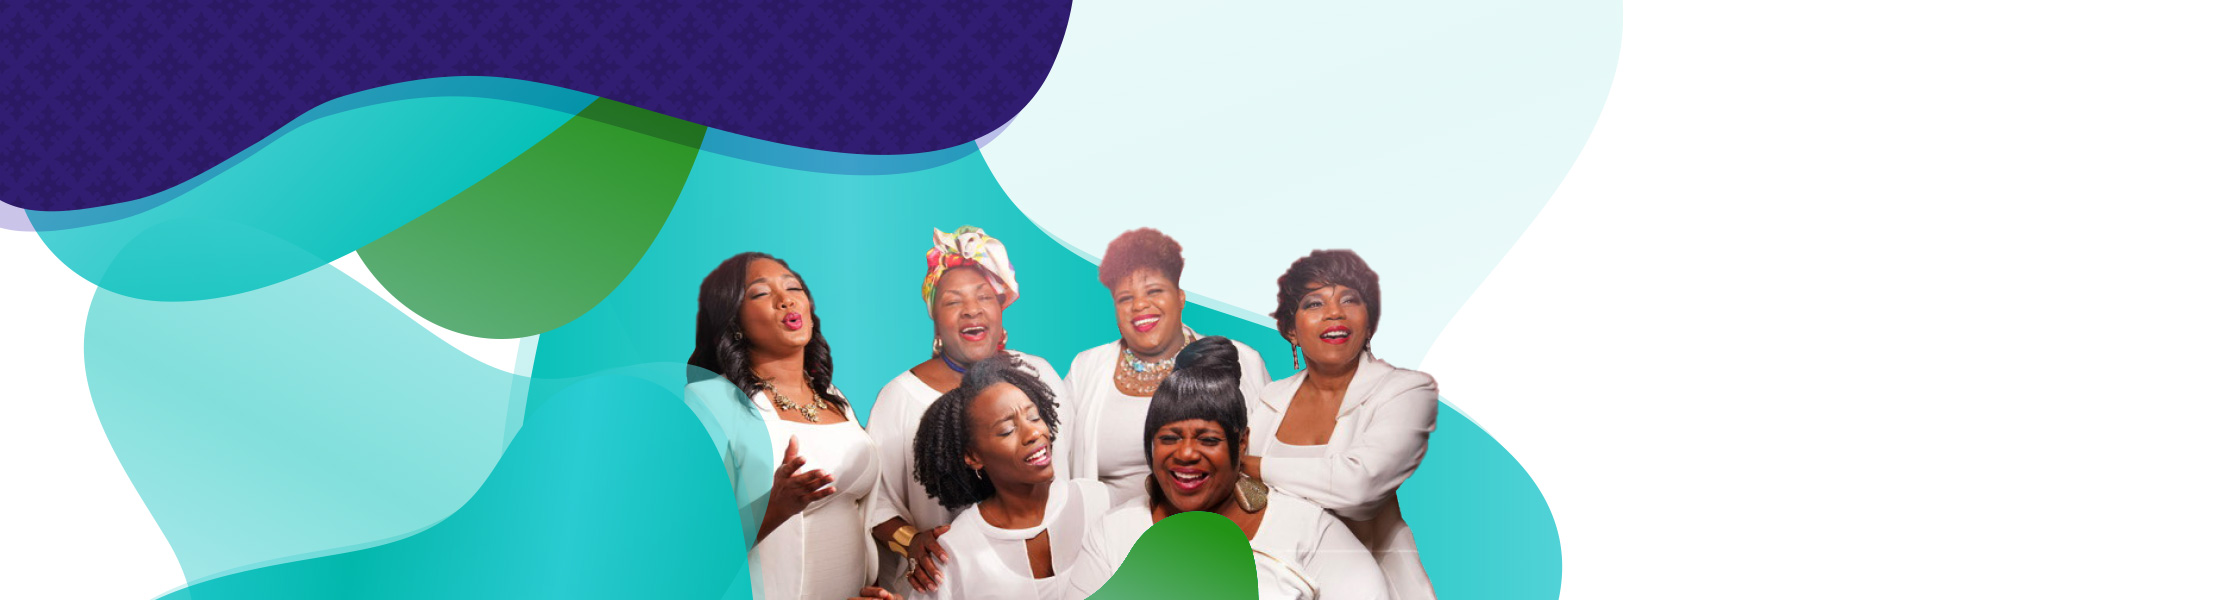 The Diva's Jukebox presented by The Divas of Eastwood: The Carver 2020 - 2021 Season